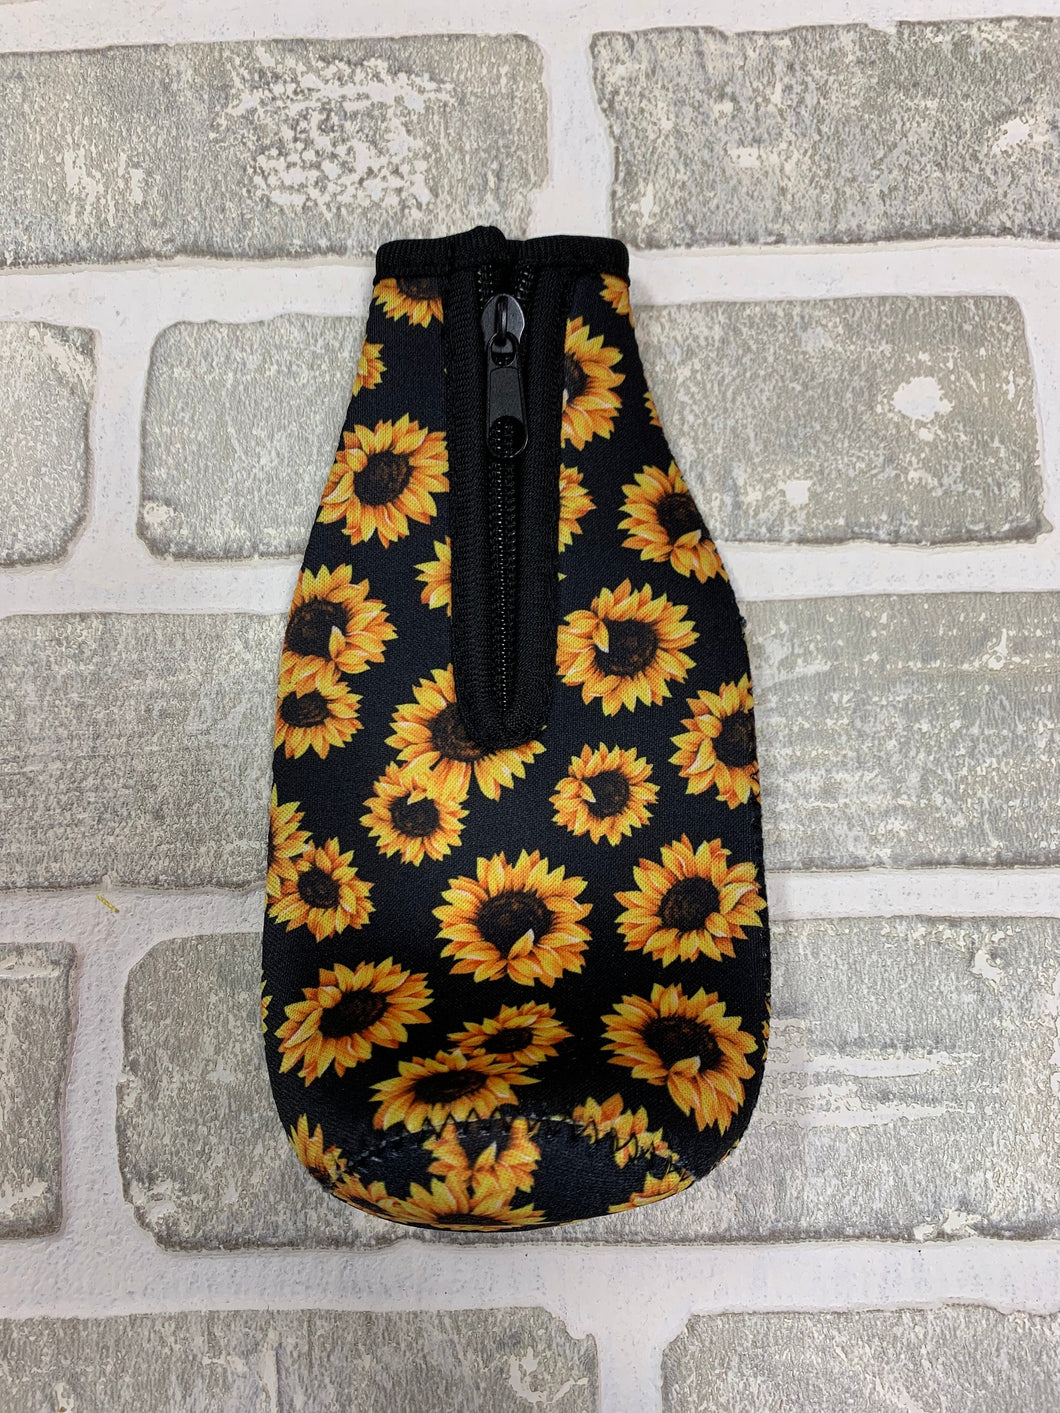 Black sunflower bottle koozie blanks